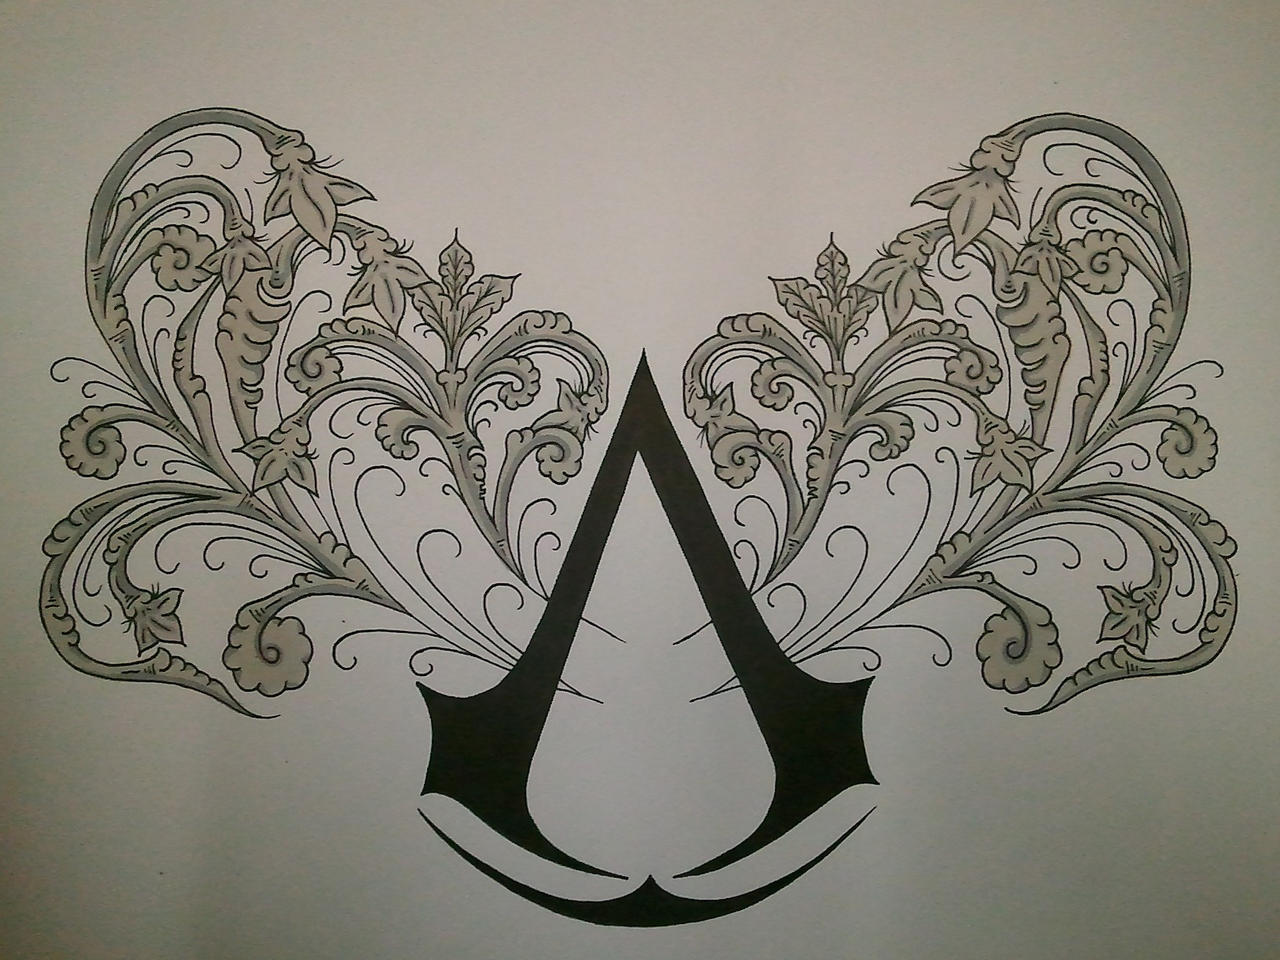 1000+ images about Assassin's creed(: on Pinterest ...